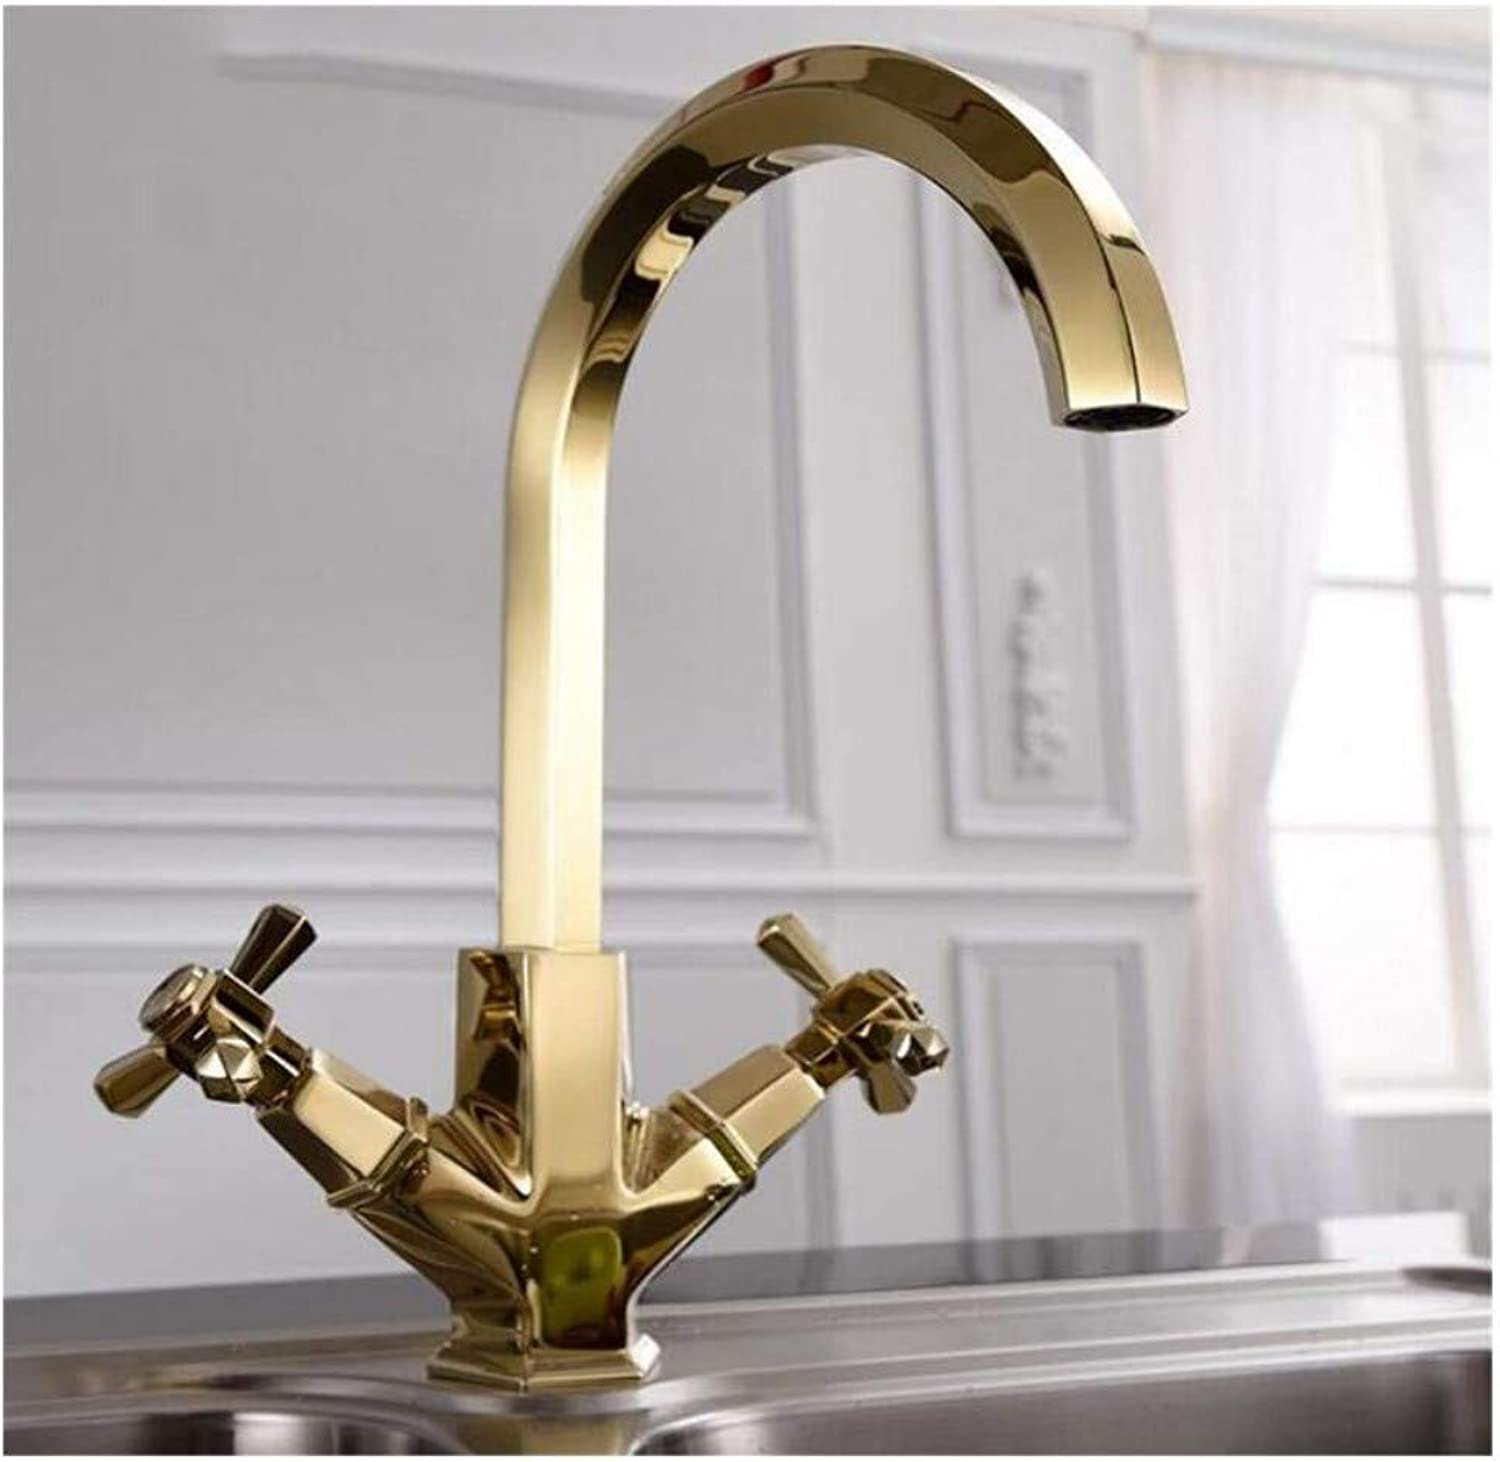 Faucet Lead-Free Square Innovationfaucet Unique Design 360 Degree Swivel Modern Hot& Cold Mixer Sink Faucets